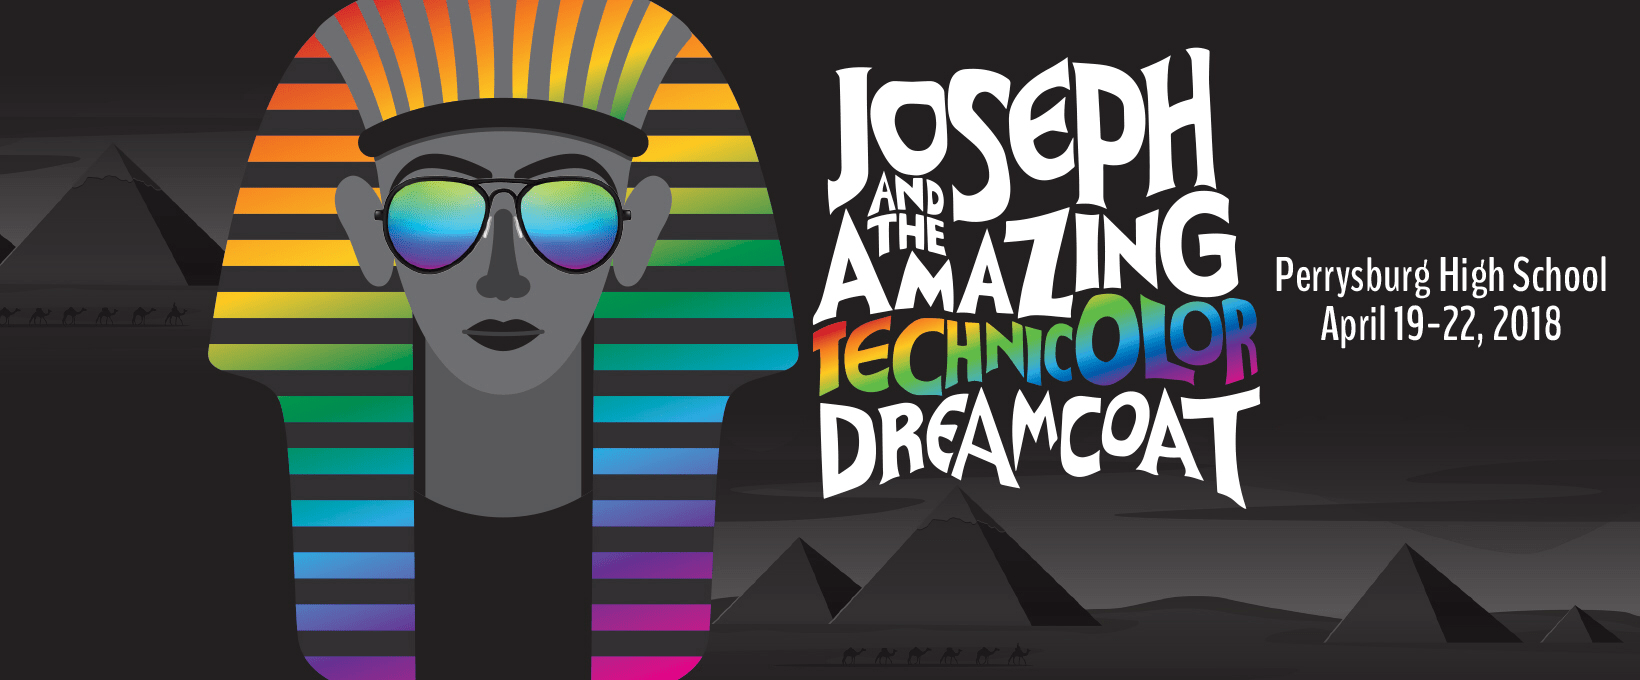 Go Go Go see Joseph and the Amazing Technicolor Dreamcoat!